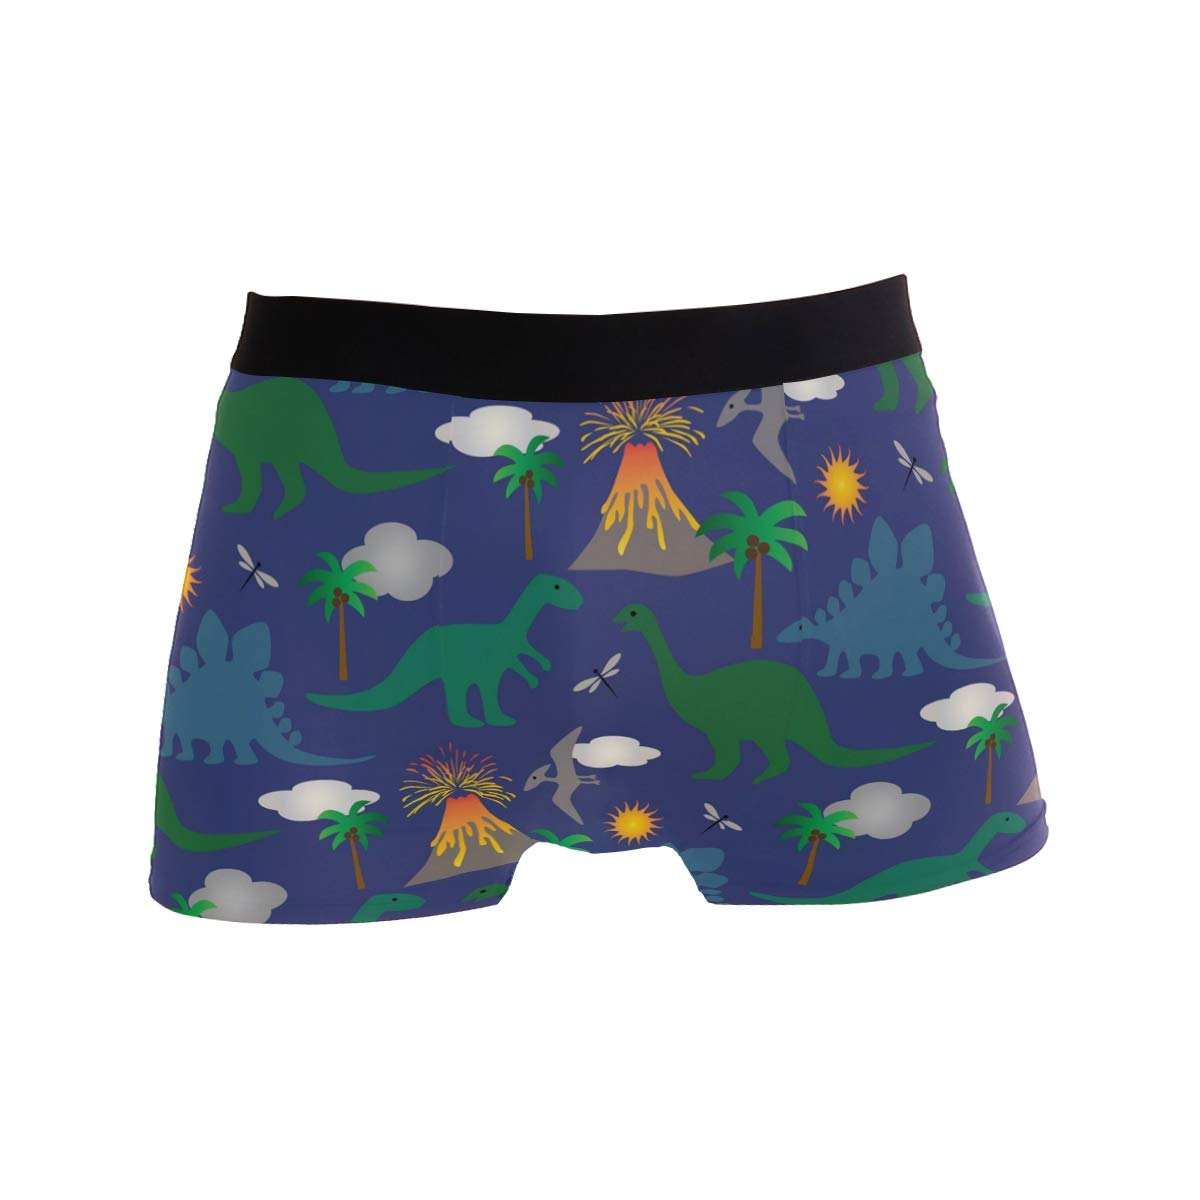 Dinosaur Pattern Boxer Briefs for Men Mens Comfortable Underwear Trunk